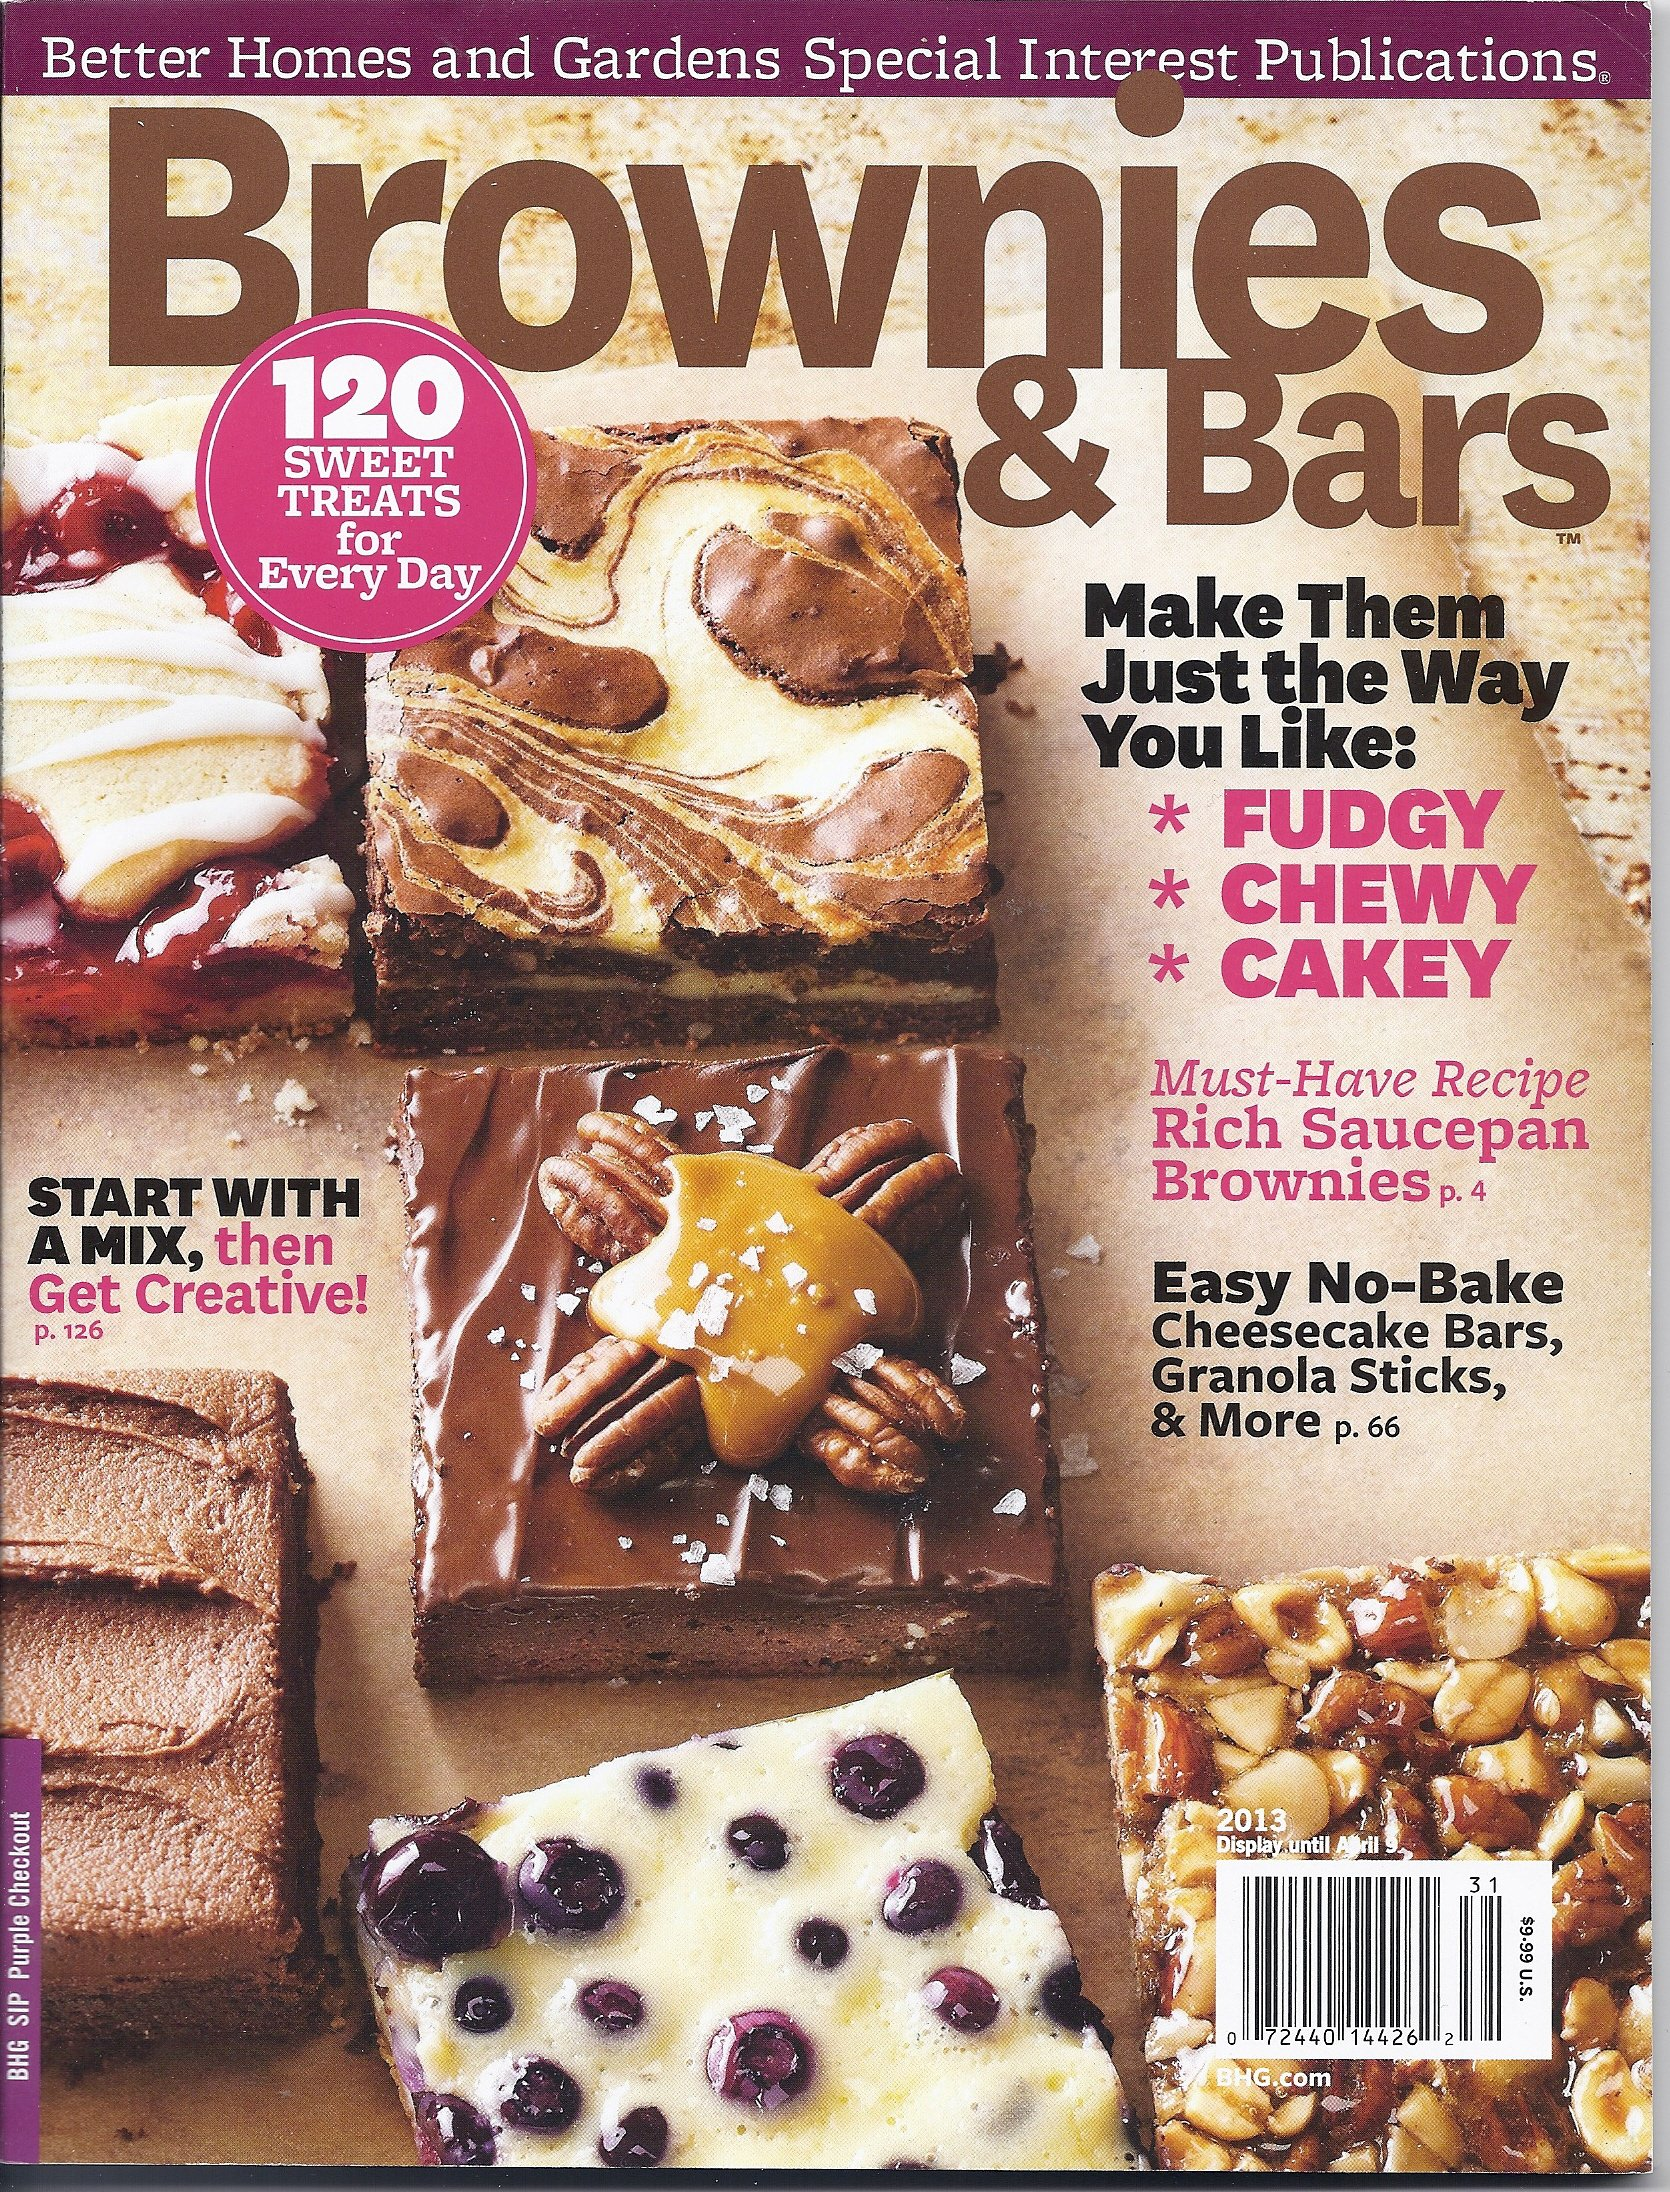 brownies bars magazine better homes gardens special interest publications james d blume amazoncom books - Better Homes And Gardens Past Issues